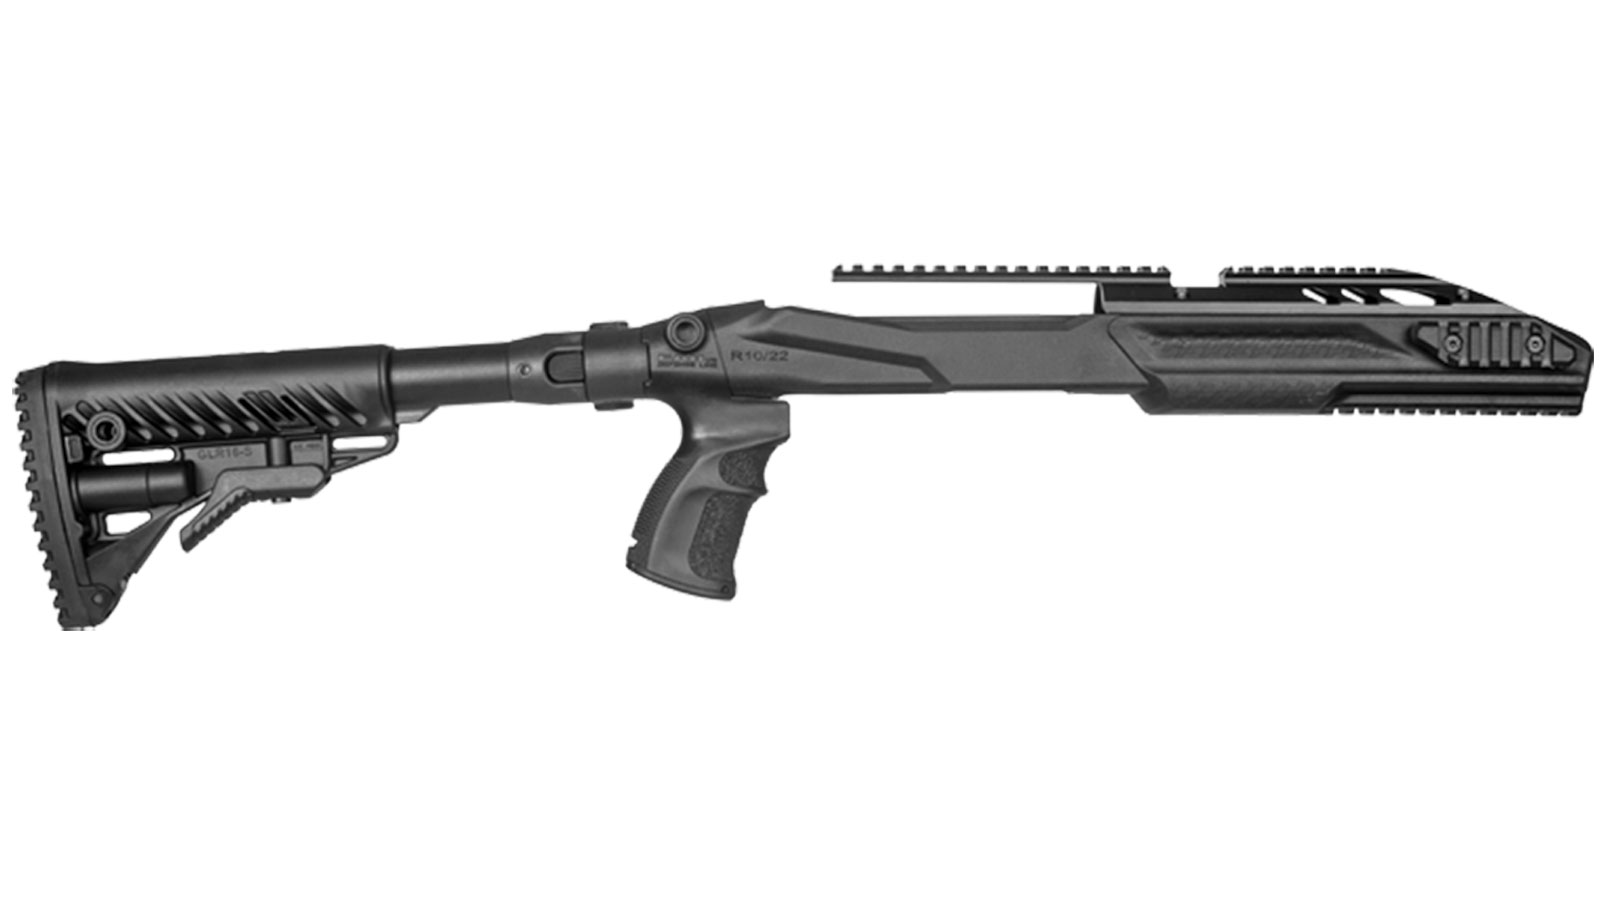 Mako M4 PRO R10 22 M4 Collapsible Stock Conversion Kit Pro Ruger 10 22